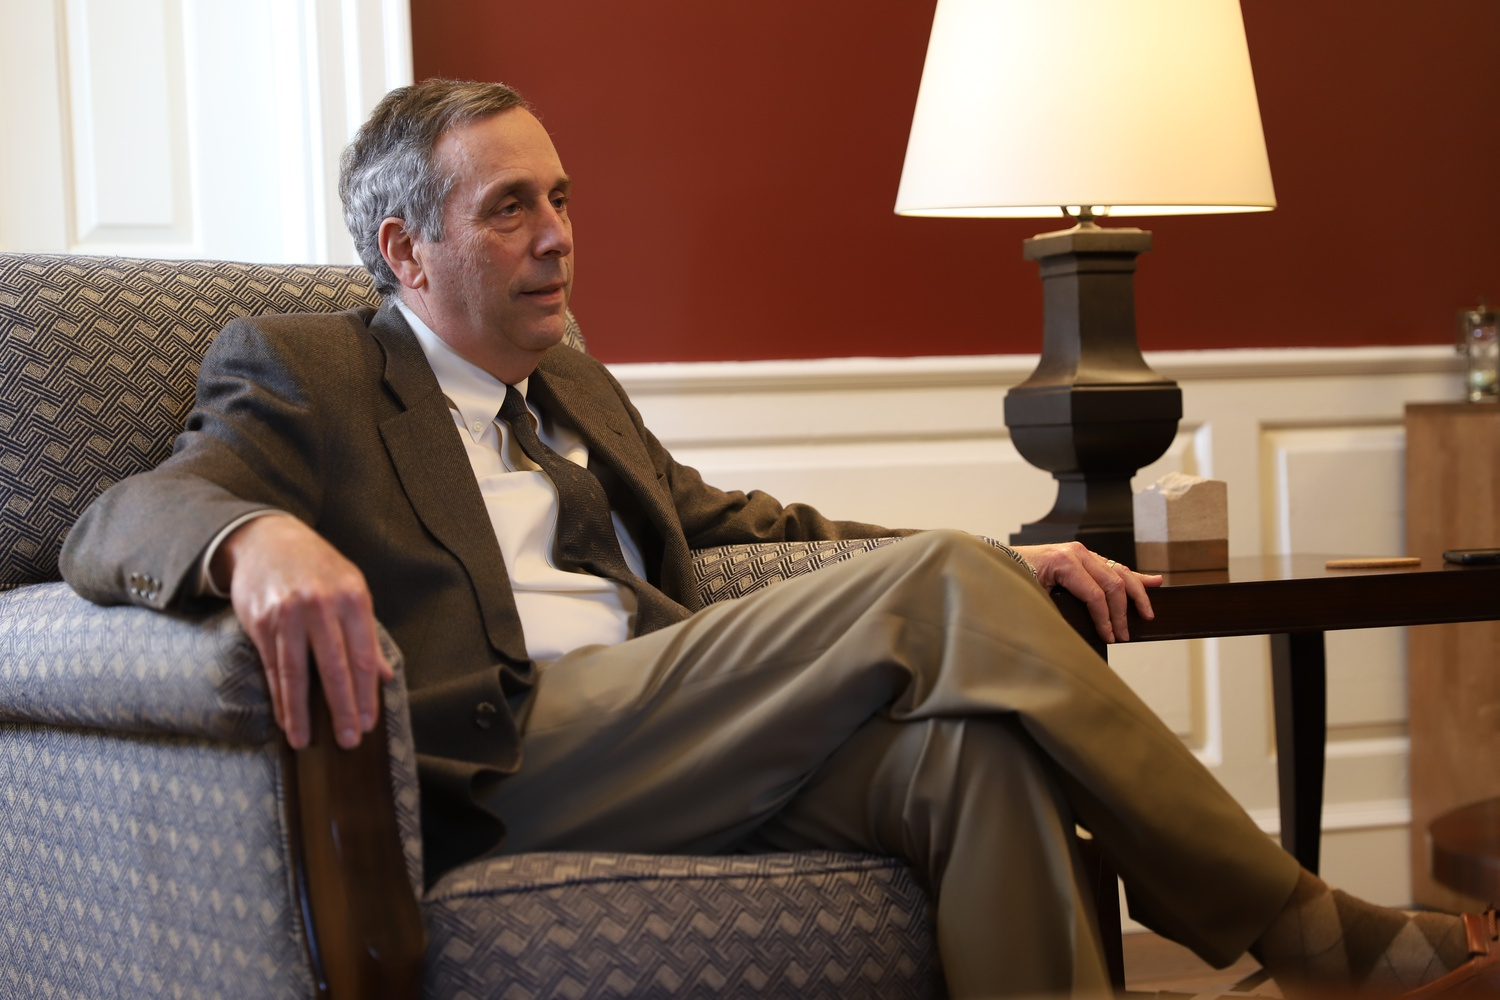 Harvard University President Lawrence S. Bacow has tested positive for COVID-19, he announced in an email to Harvard affiliates Tuesday.